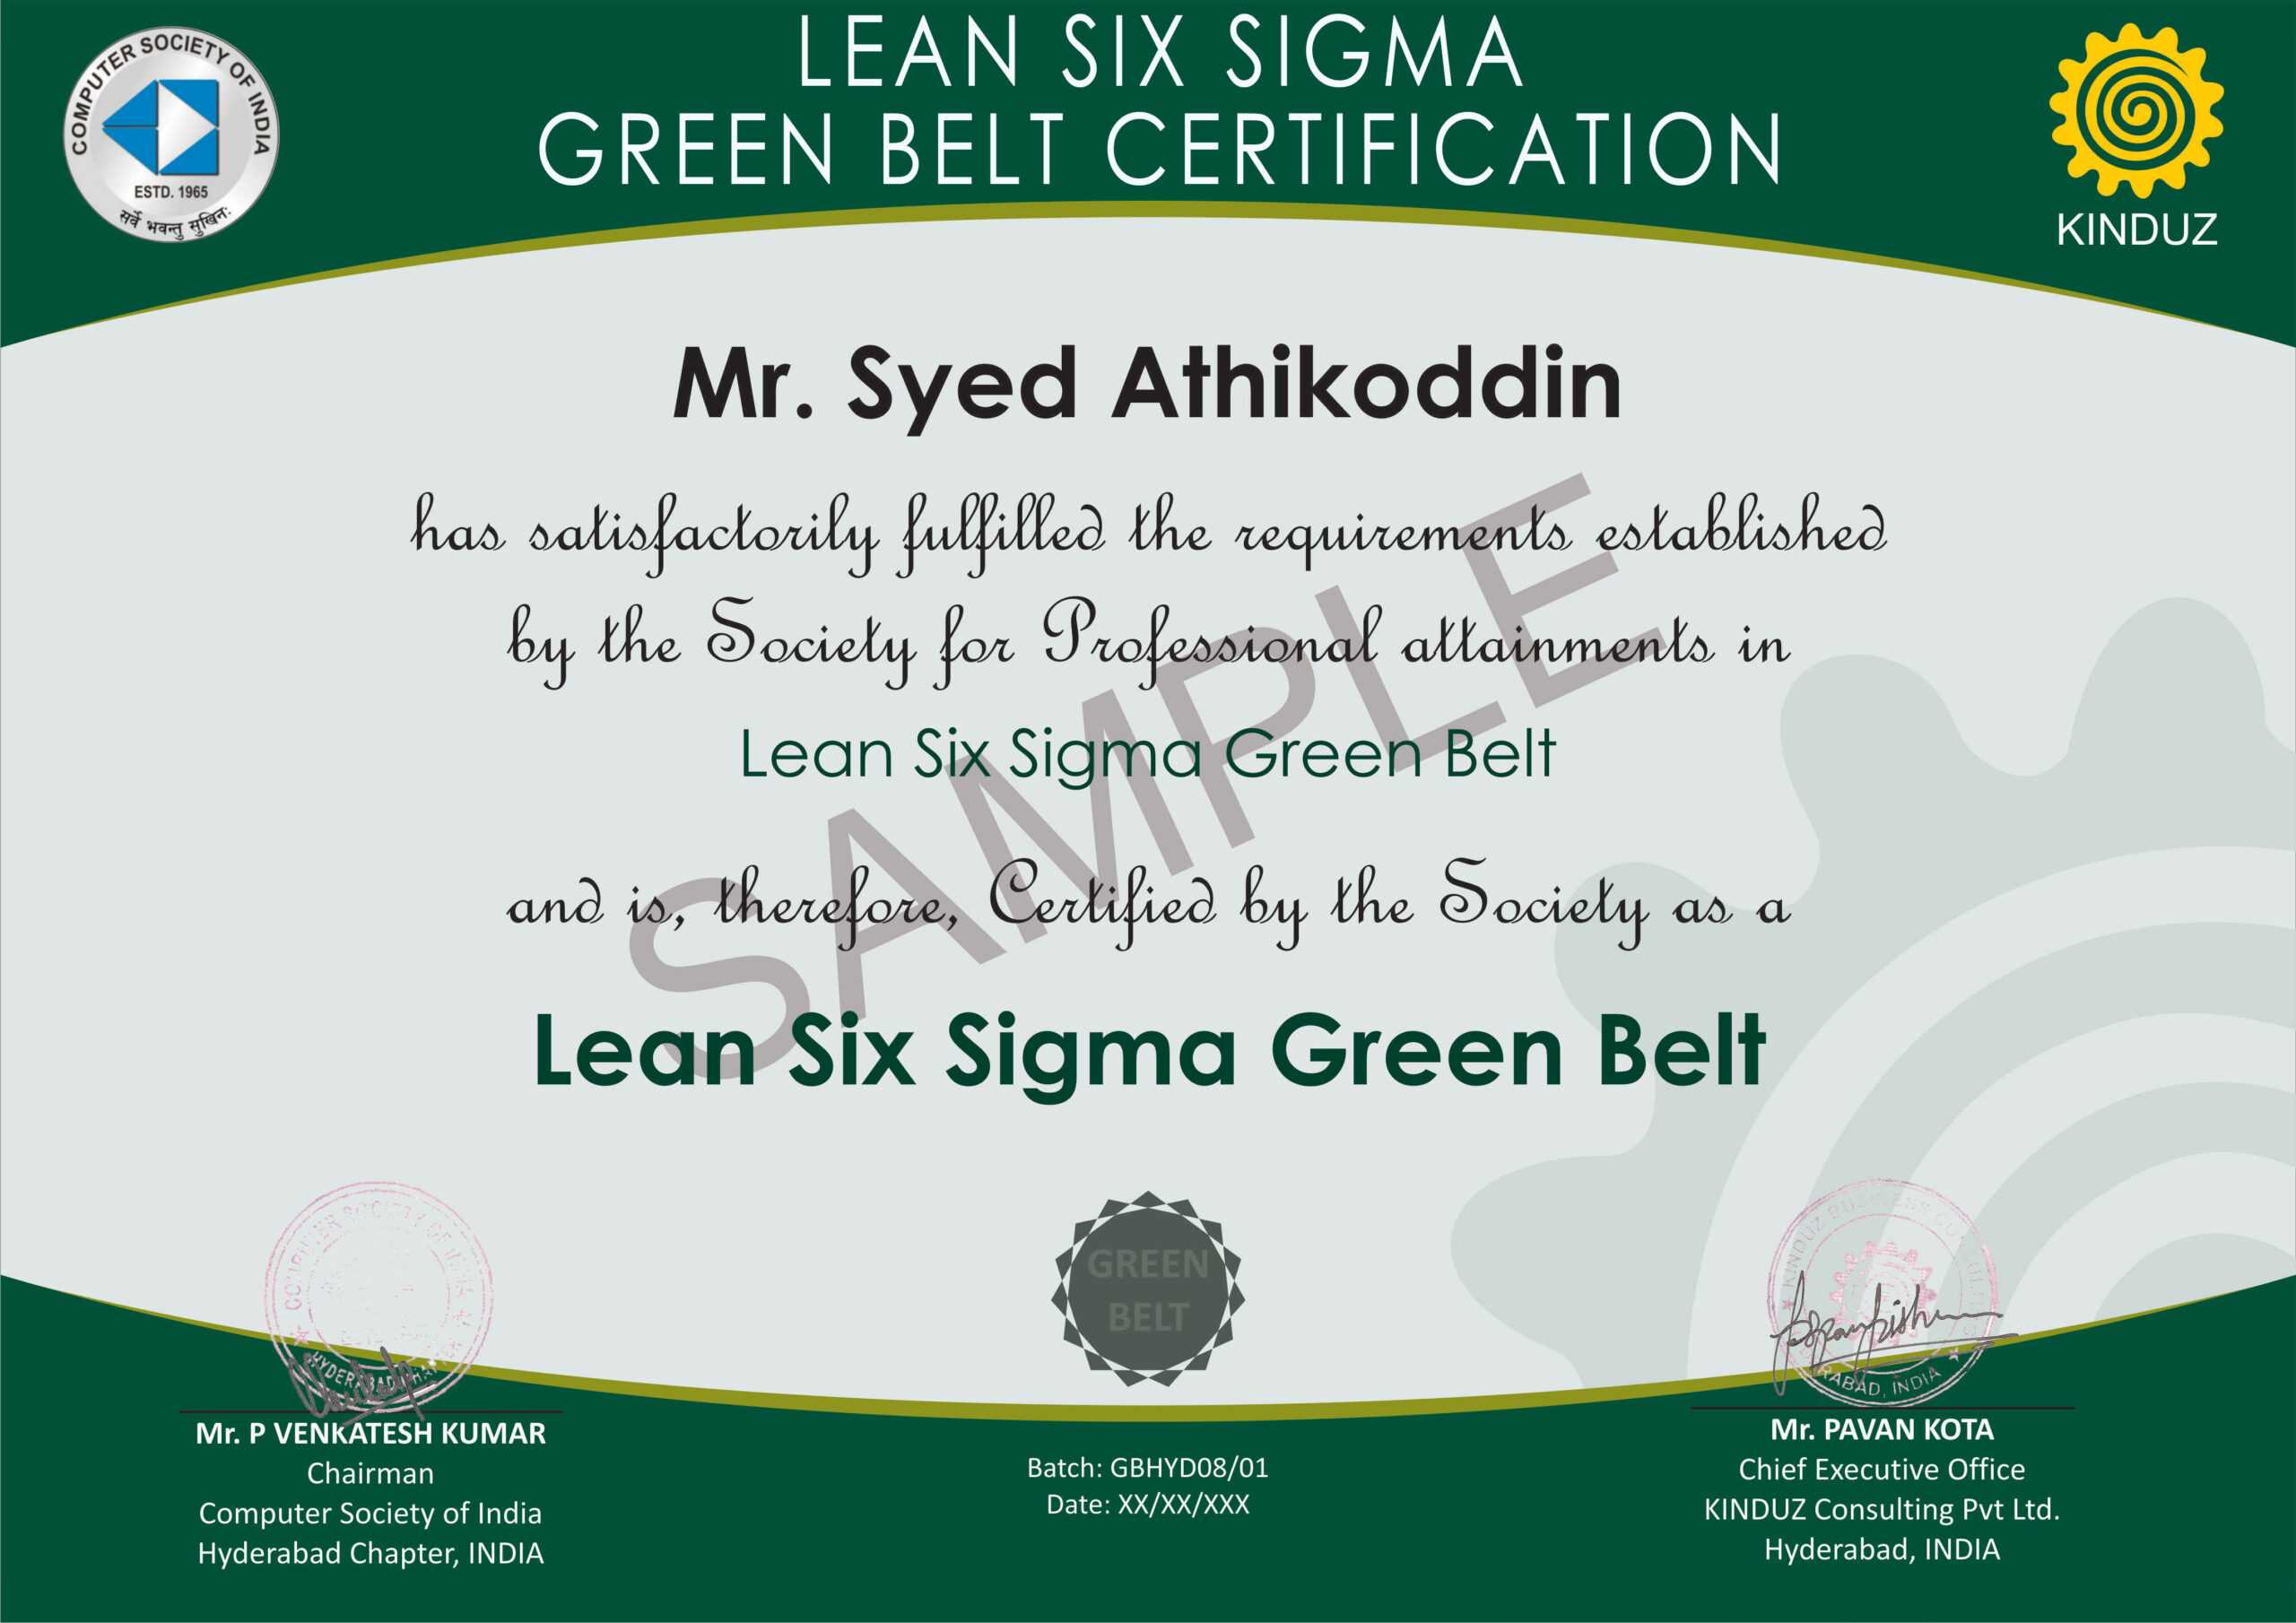 Sample Certificates - Lean Six Sigma India Intended For Green Belt Certificate Template